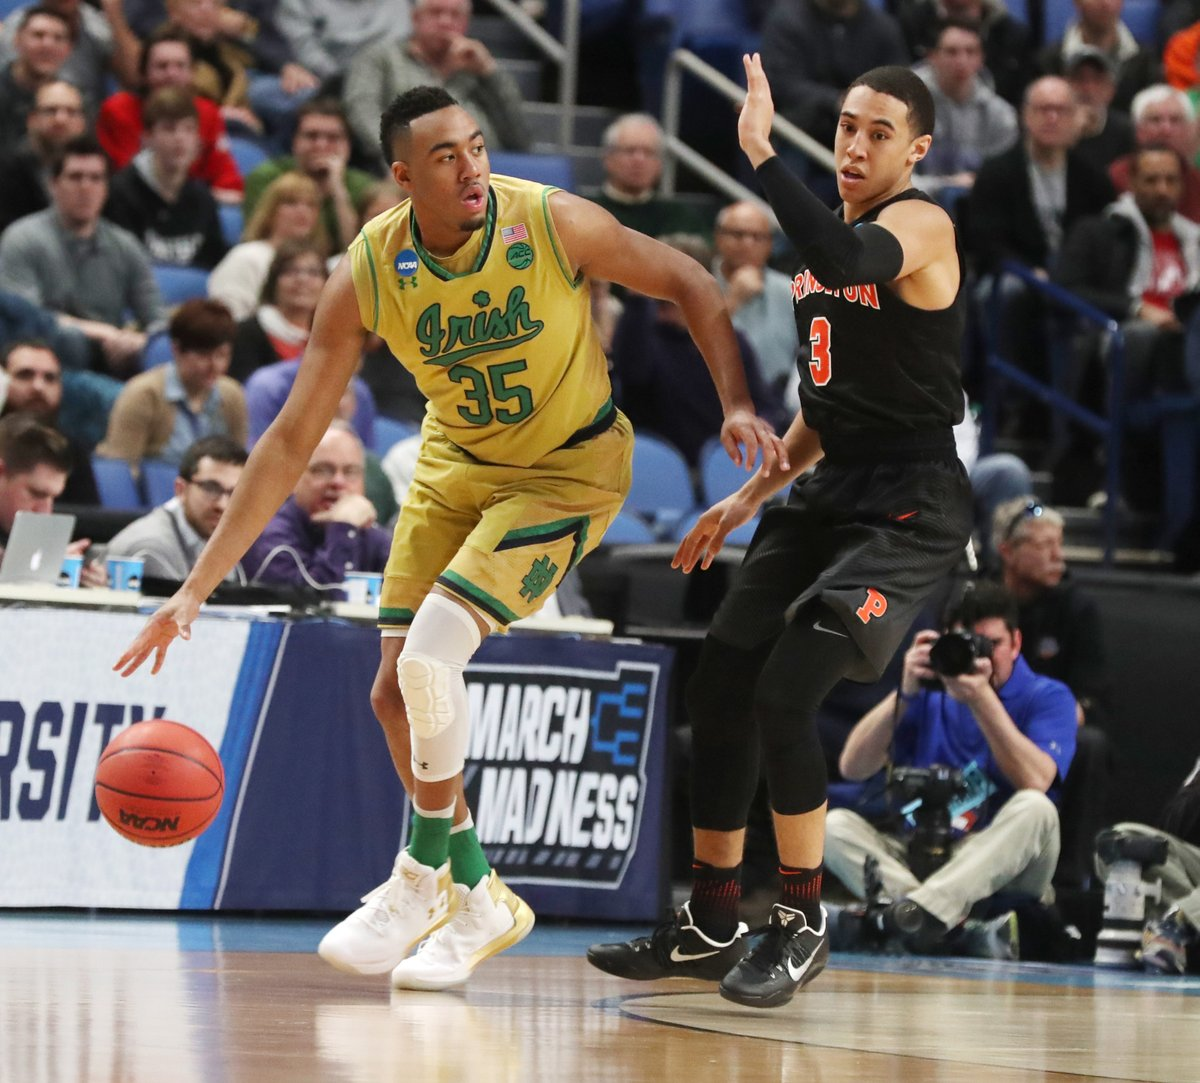 Notre Dame's Bonzie Colson. (James P. McCoy/Buffalo News)